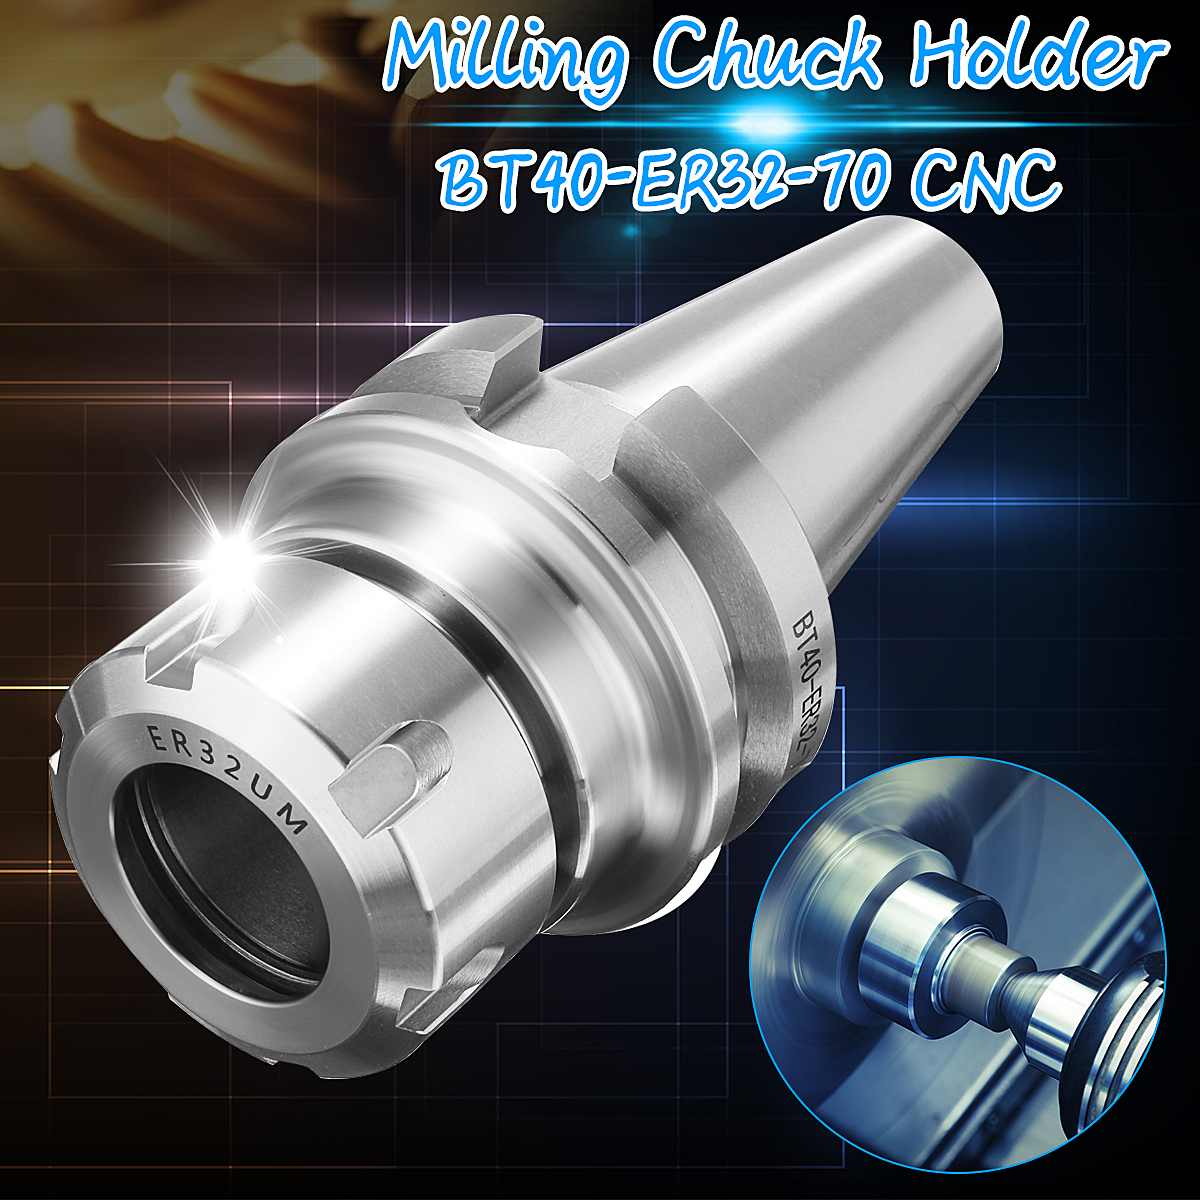 BT40 ER32 70 Spring Collet Chuck CNC Toolholder Milling Lathe Cutter Milling Cutter CNC Arbor Chuck Holder Workholding Nuts-in Tool Holder from Tools